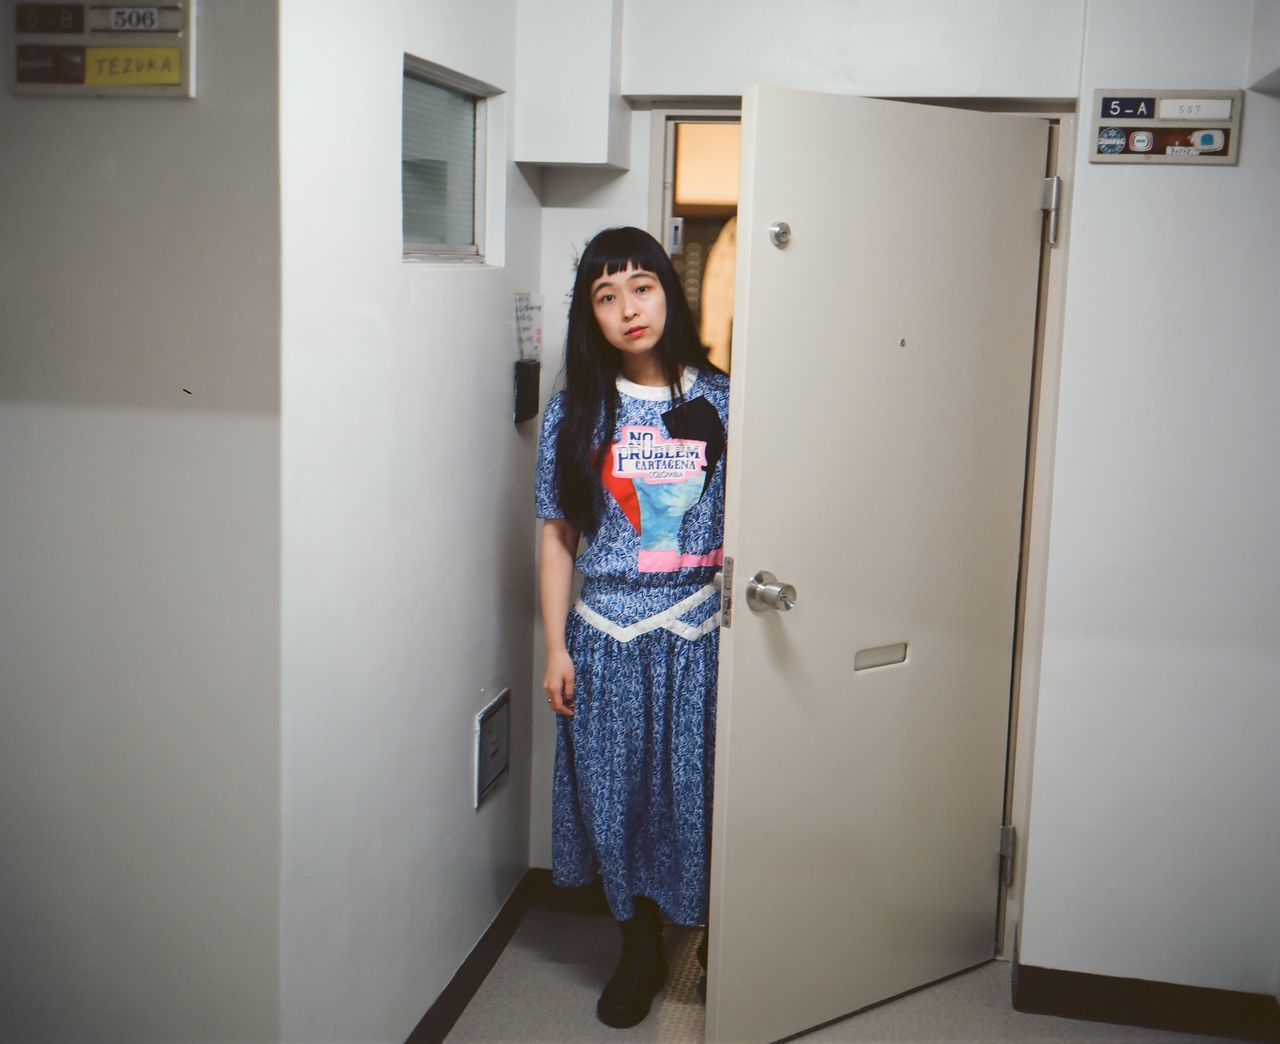 Asai Asian  Casual Clothing Day Film Front View Home Japan Kodak Kodak Portra Lifestyles Makina67 Person Plaubel Makina 67 Portrait Tokyo